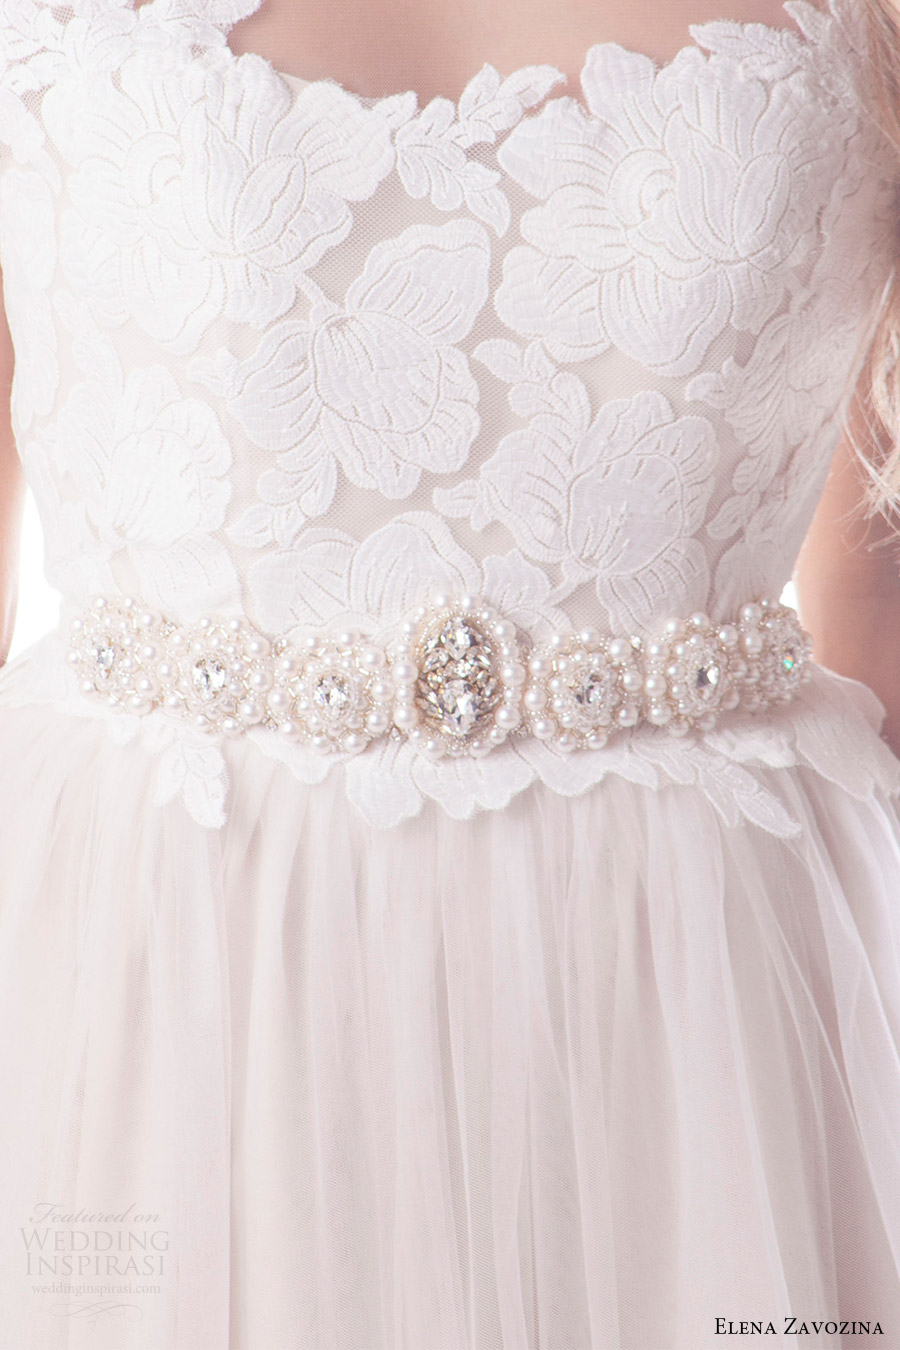 elena zavozina bridal accessories 2016 wedding pearl belt (elena) mv